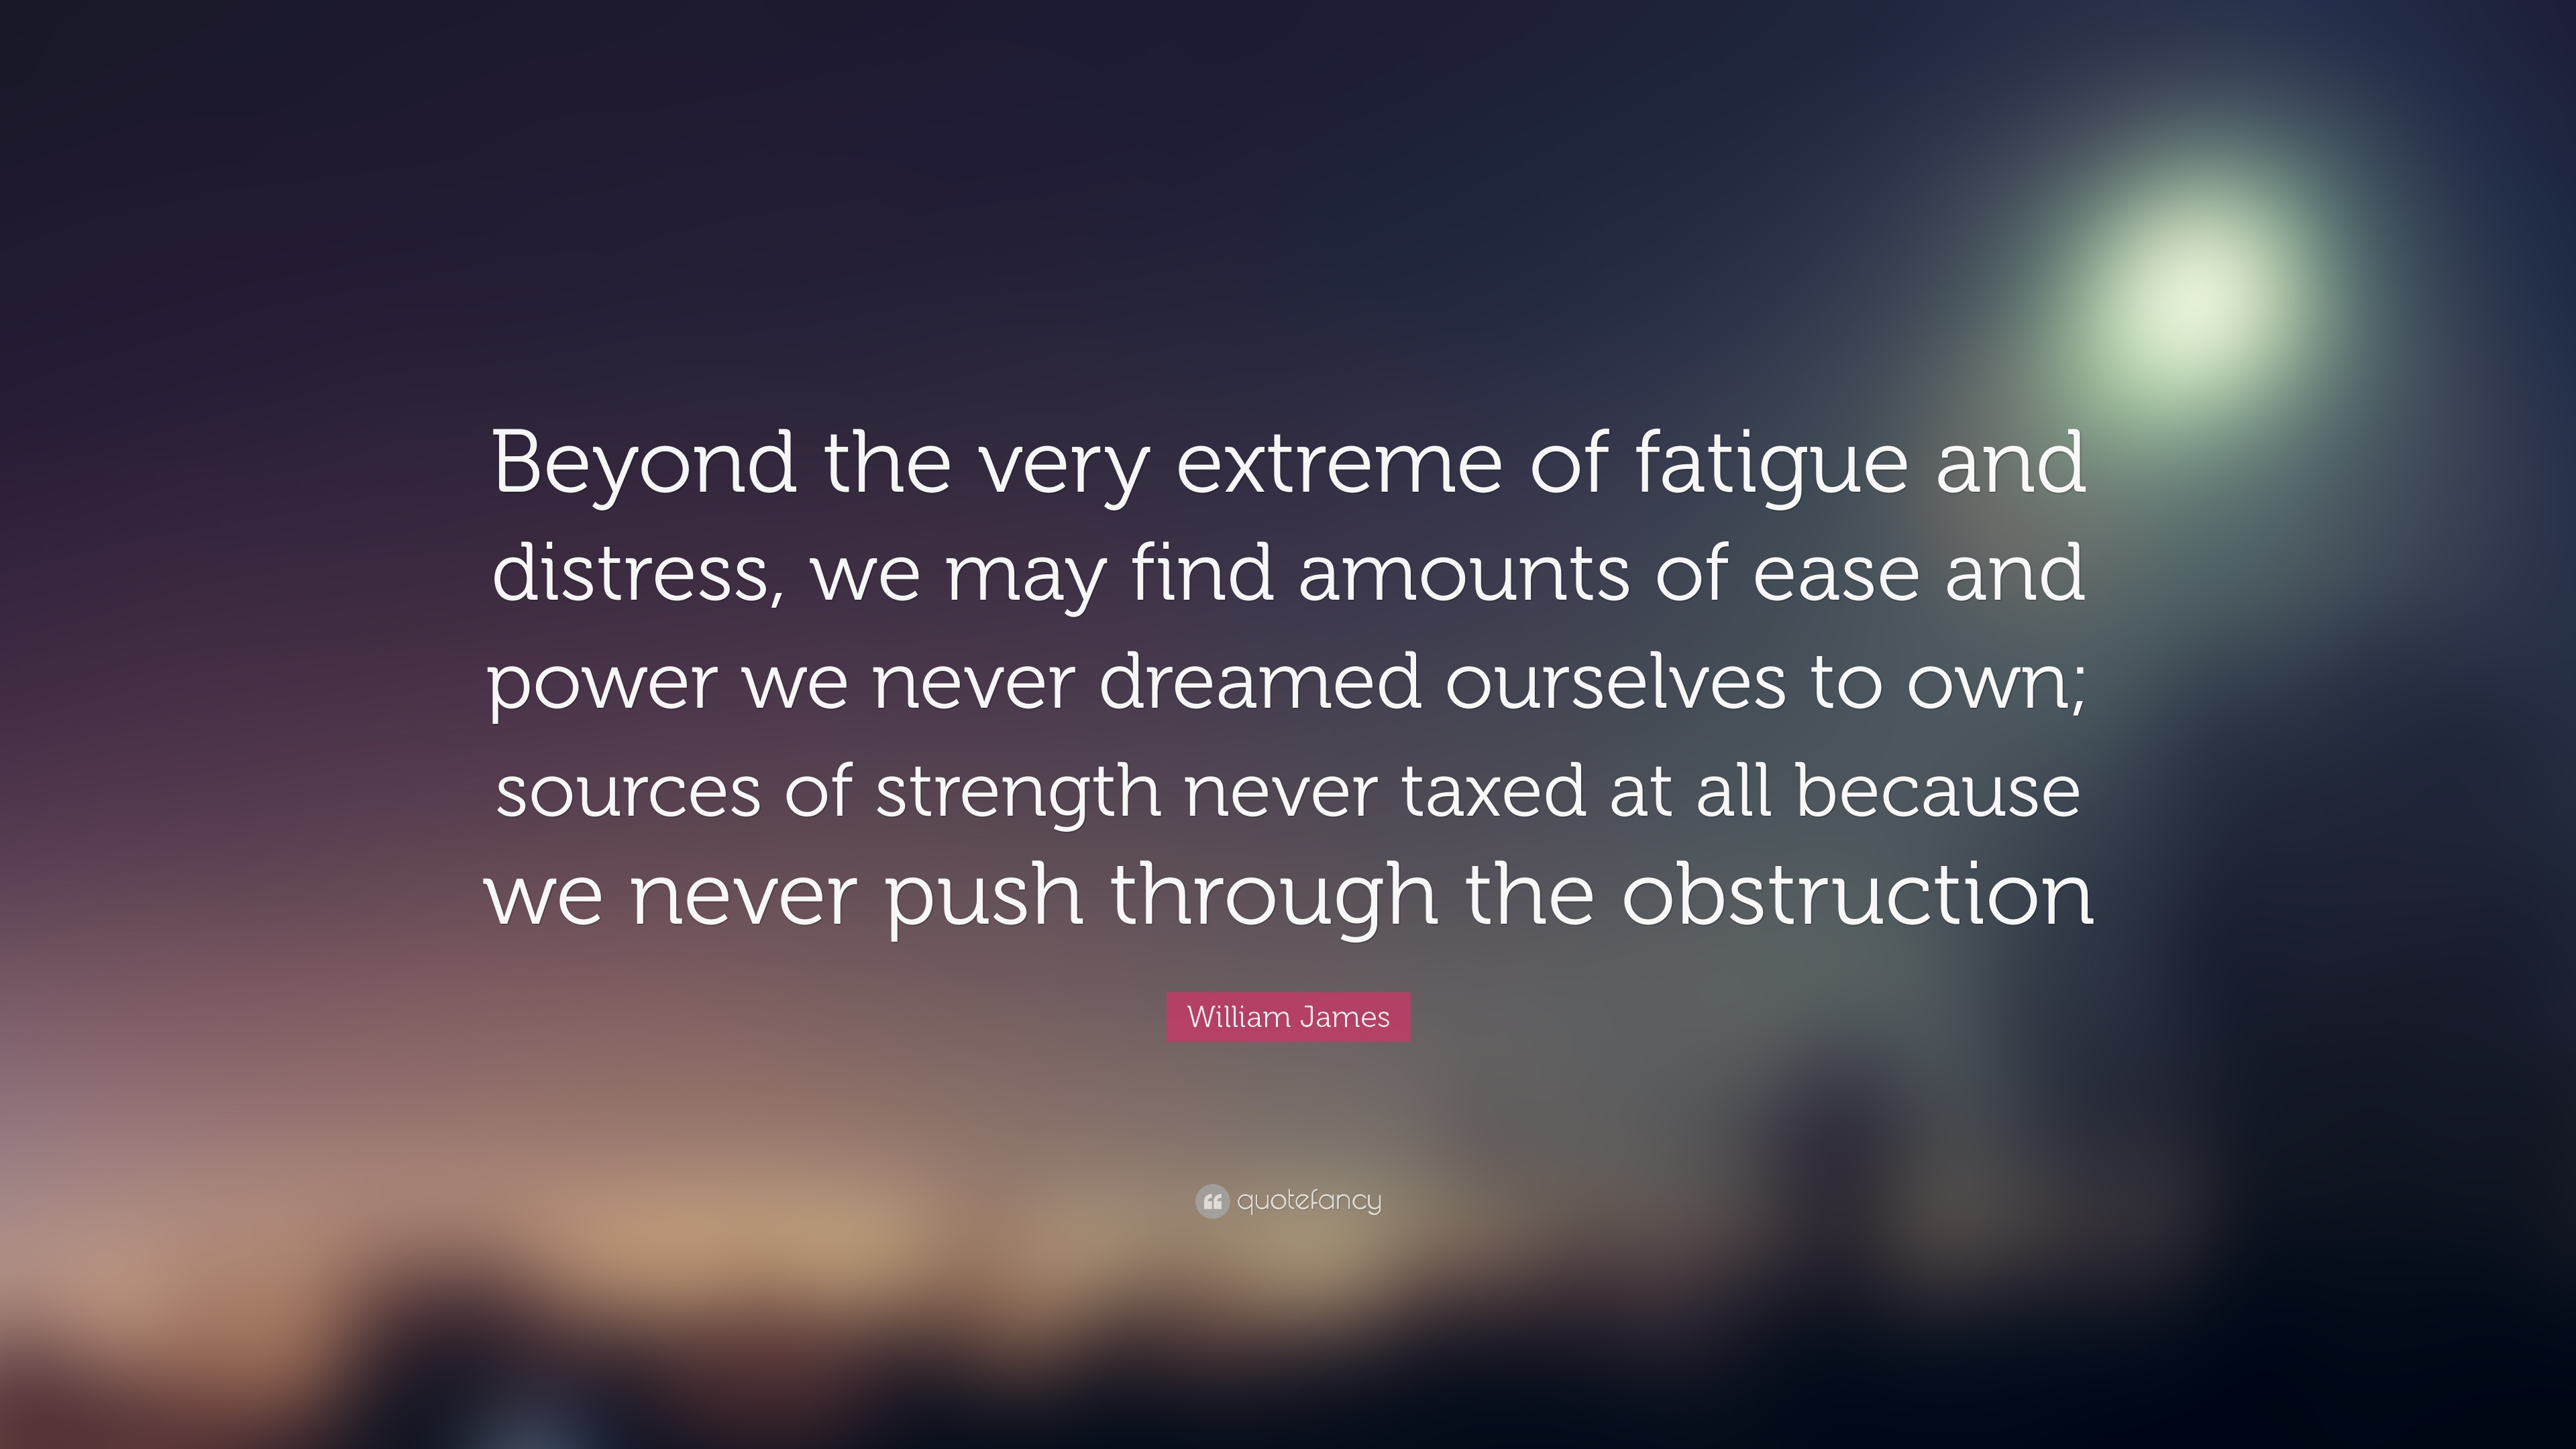 william james quote beyond the very extreme of fatigue